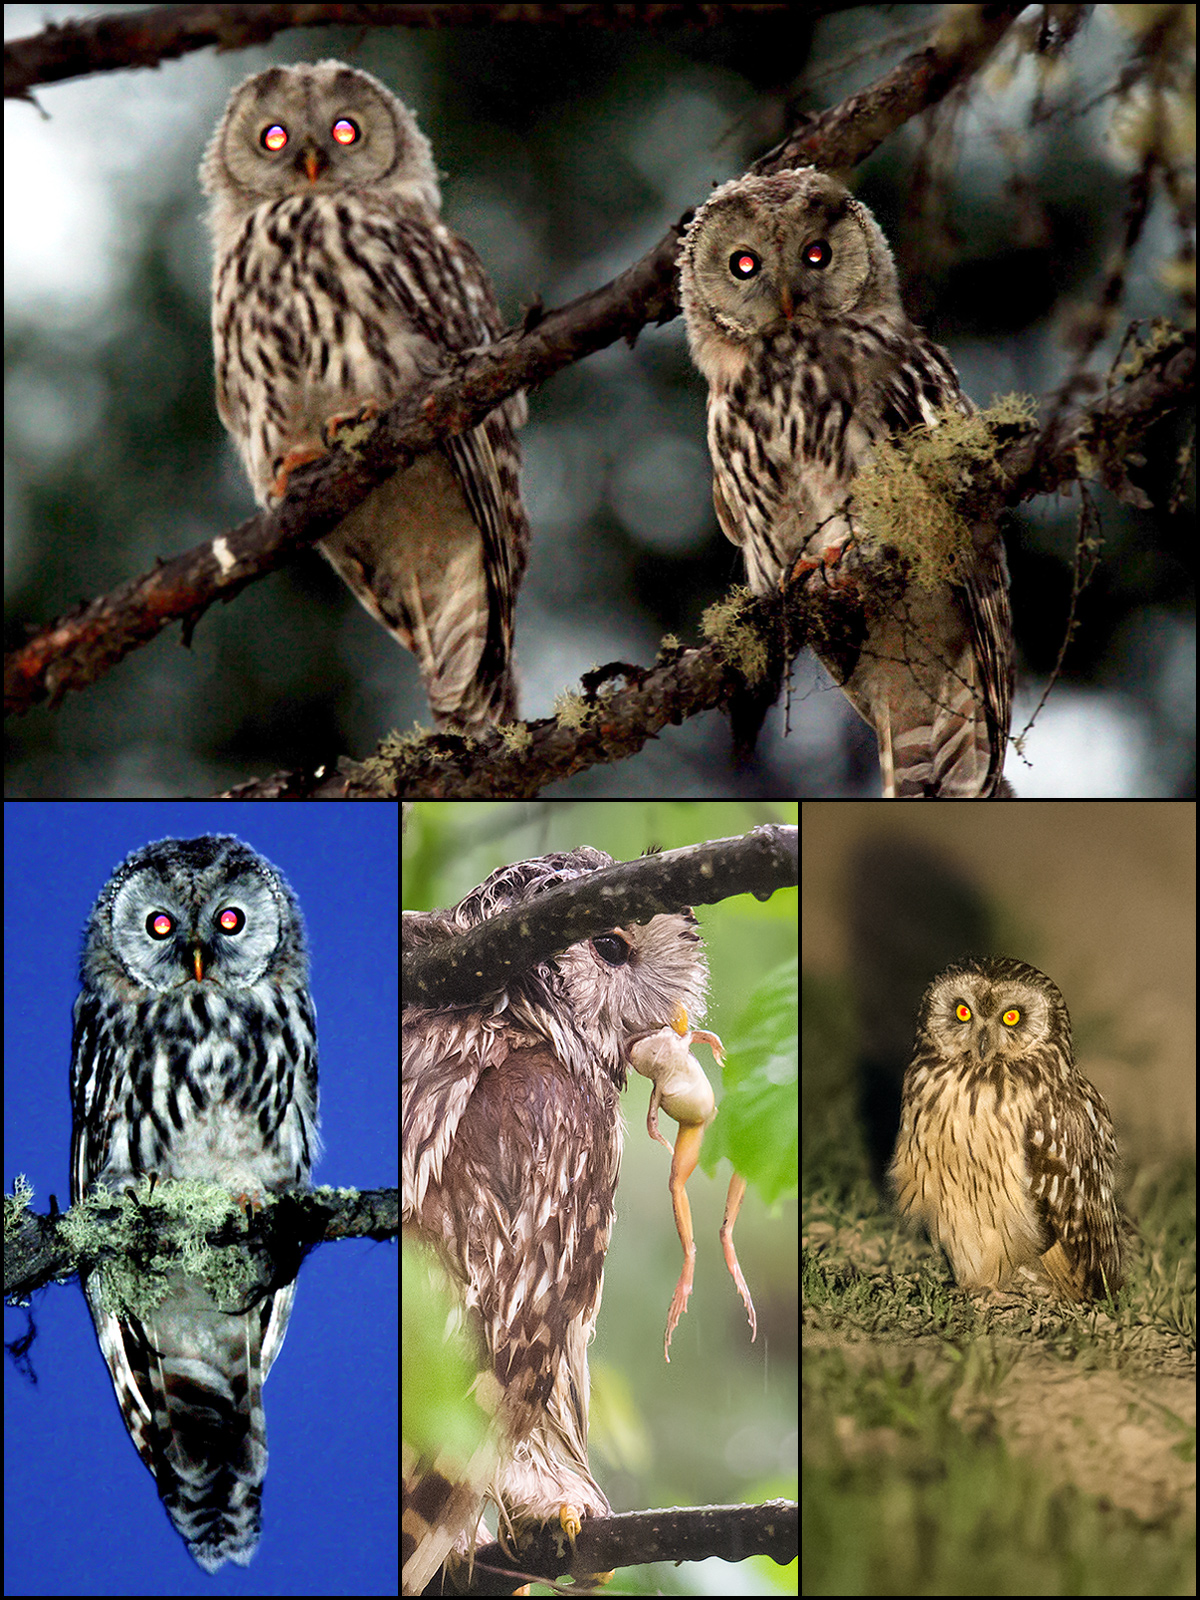 "'Ural Owl,' writes MacKinnon, 'is a true wood owl [and] an impressively large bird. It looks, sounds, and behaves like a giant Himalayan Owl. ... Short-eared Owl is a grassland species that also moves to warmer locations in winter."" Top: Ural Owl, fledglings, Daxing'anling (John MacKinnon). Bottom L: adult Ural Owl, Daxing'anling (Li Jixiang). Bottom C: Ural Owl with frog in rain, Raohe, Heilongjiang, 28 July 2015 (Craig Brelsford). Bottom R: Short-eared Owl, Honghe Nature Reserve, Heilongjiang, 30 July 2015 (Craig Brelsford)."